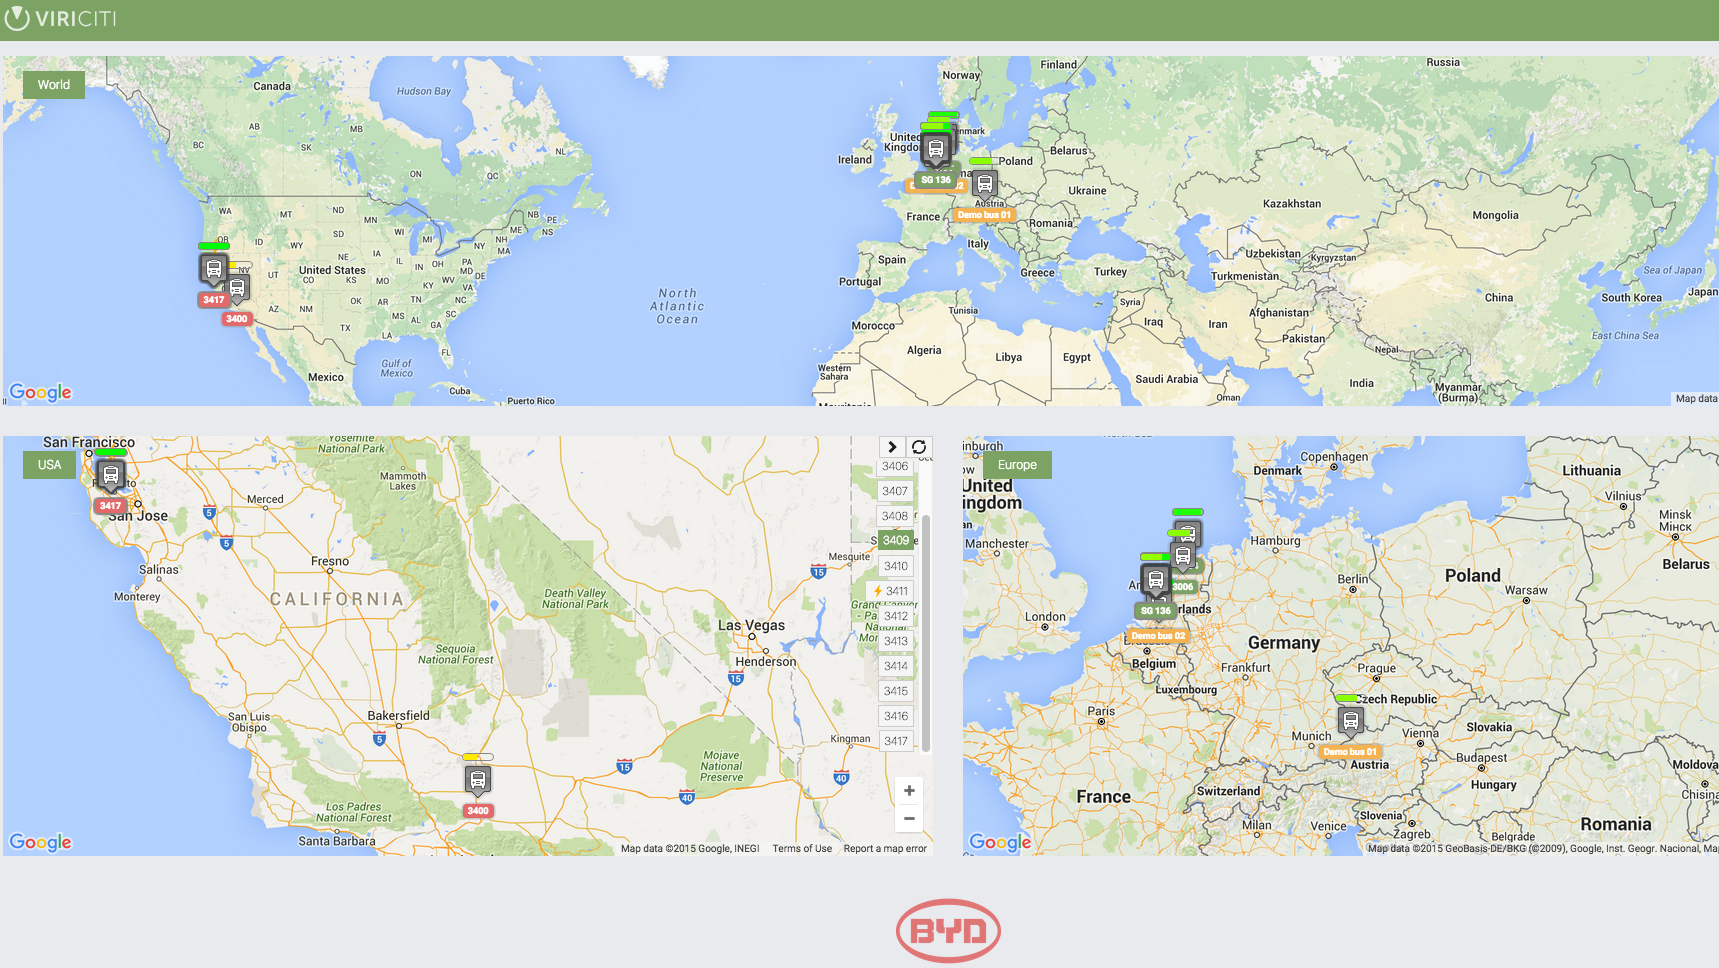 An overview of a BYD electric bus fleet in Europe and the US. The overview is based on real-time data retrieved with ViriCiti's vehicle monitoring software and hardware.